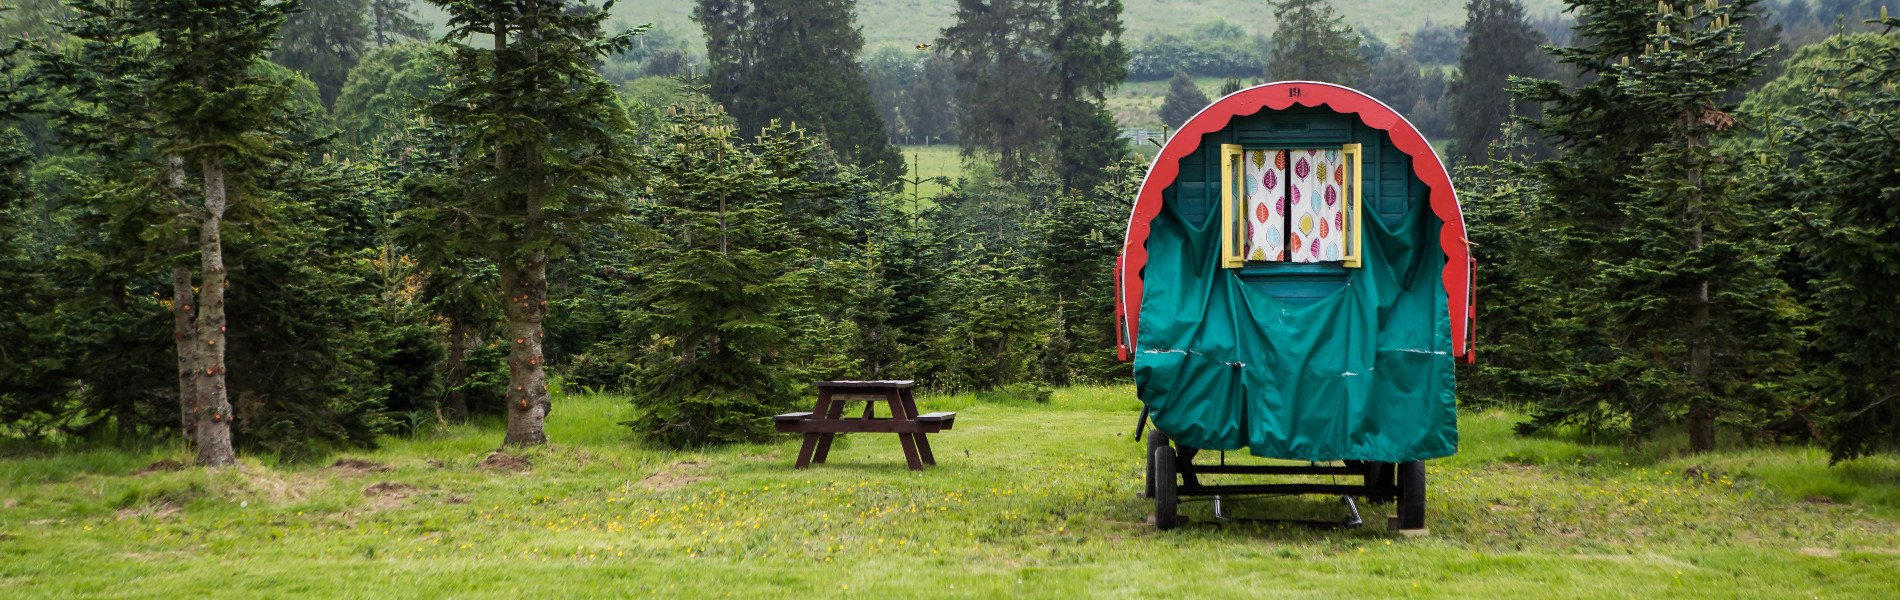 Glamping in a gypsy caravan at Clissmann Horse Caravans in Wicklow, Ireland